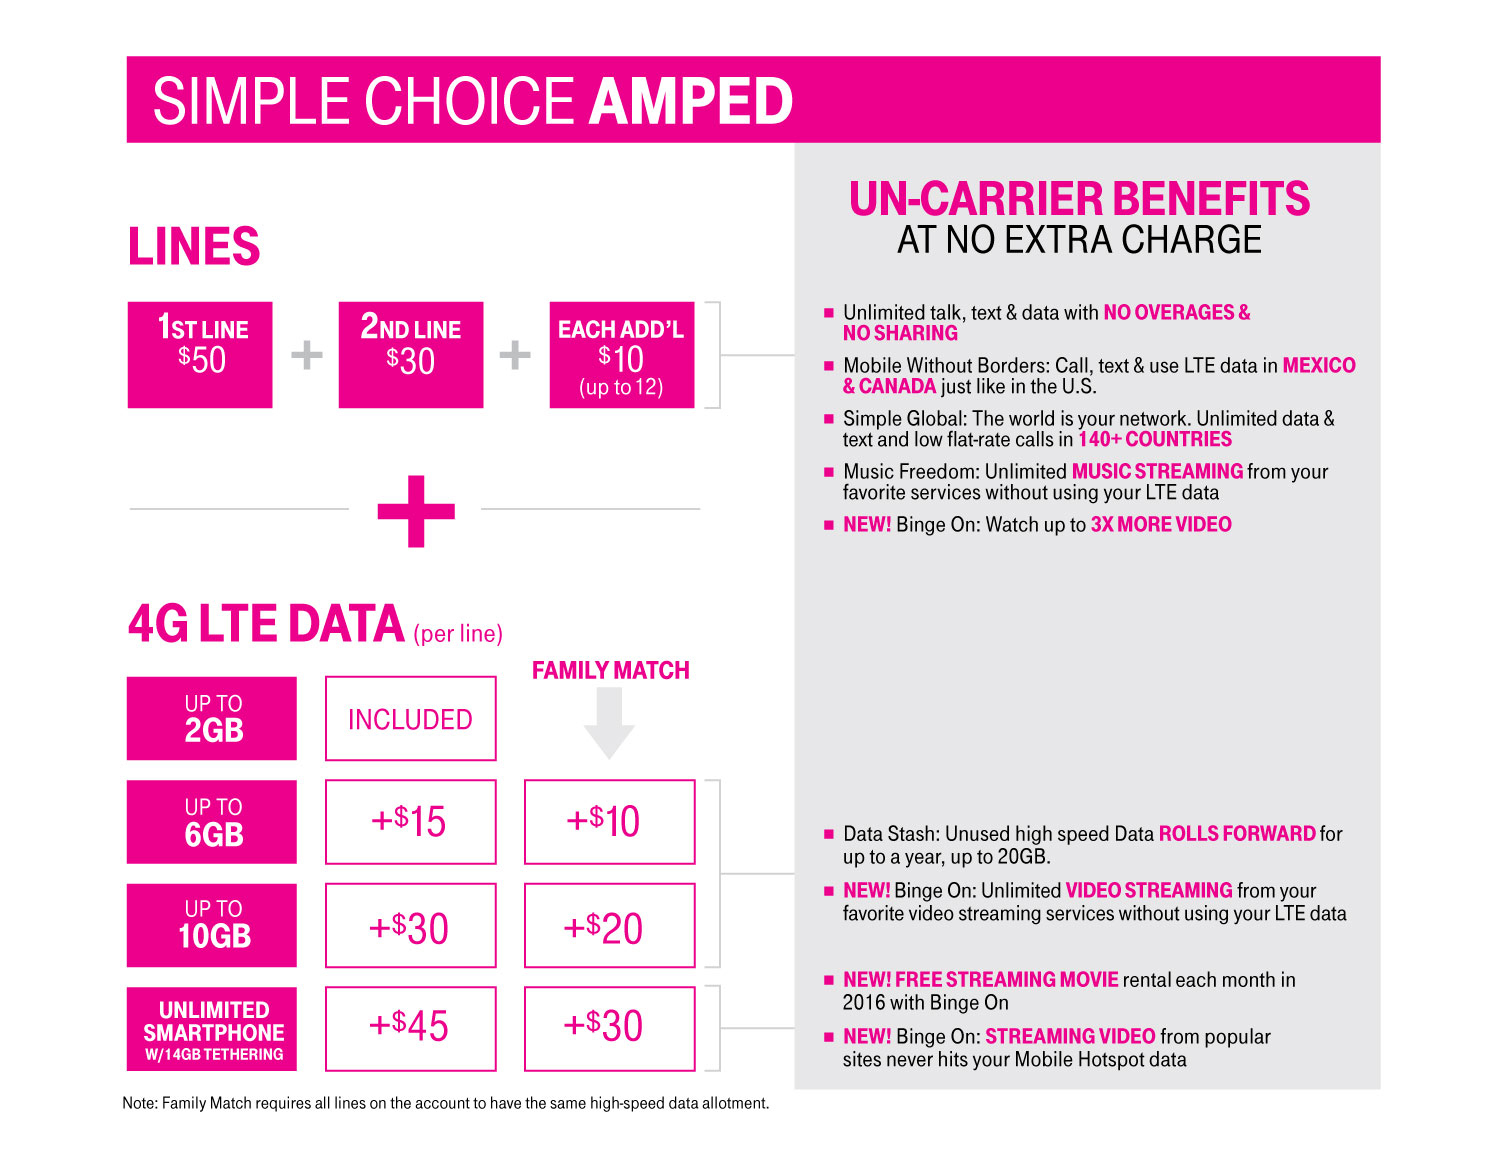 T mobile business plans unlimited